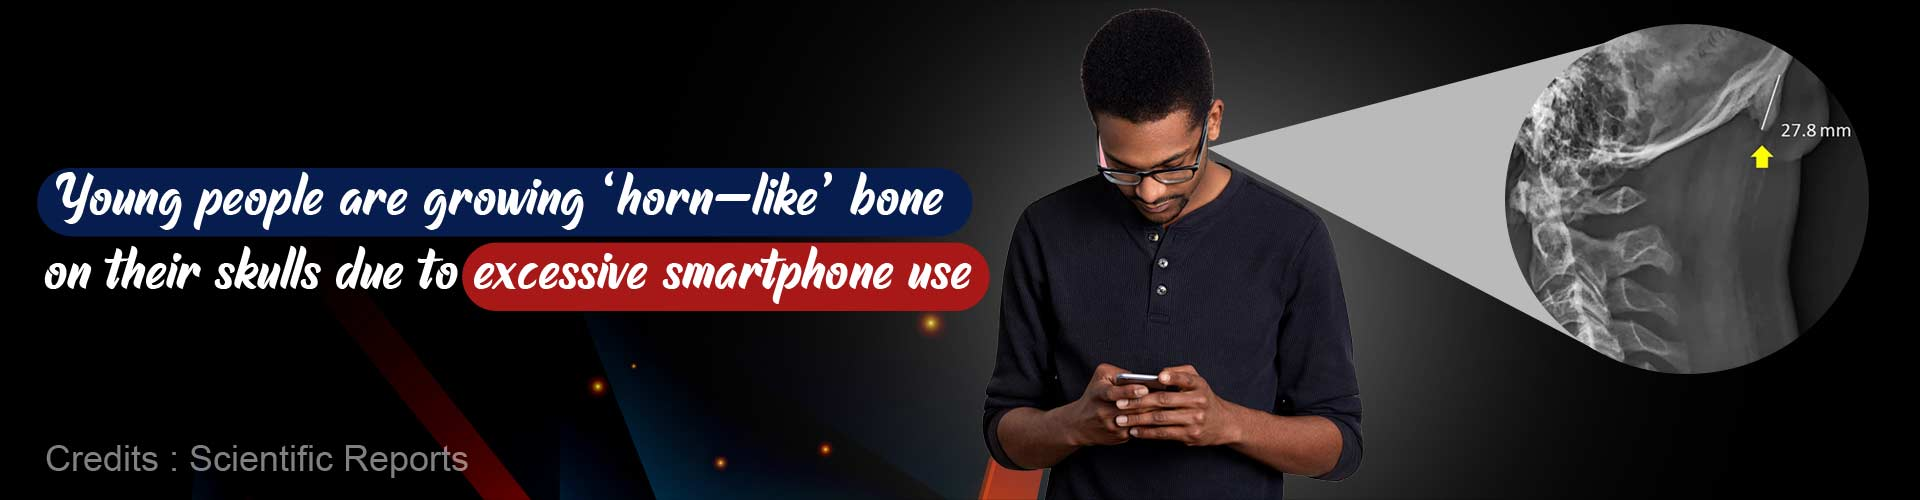 Excessive Smartphone Use is Causing Young People to Grow Horns